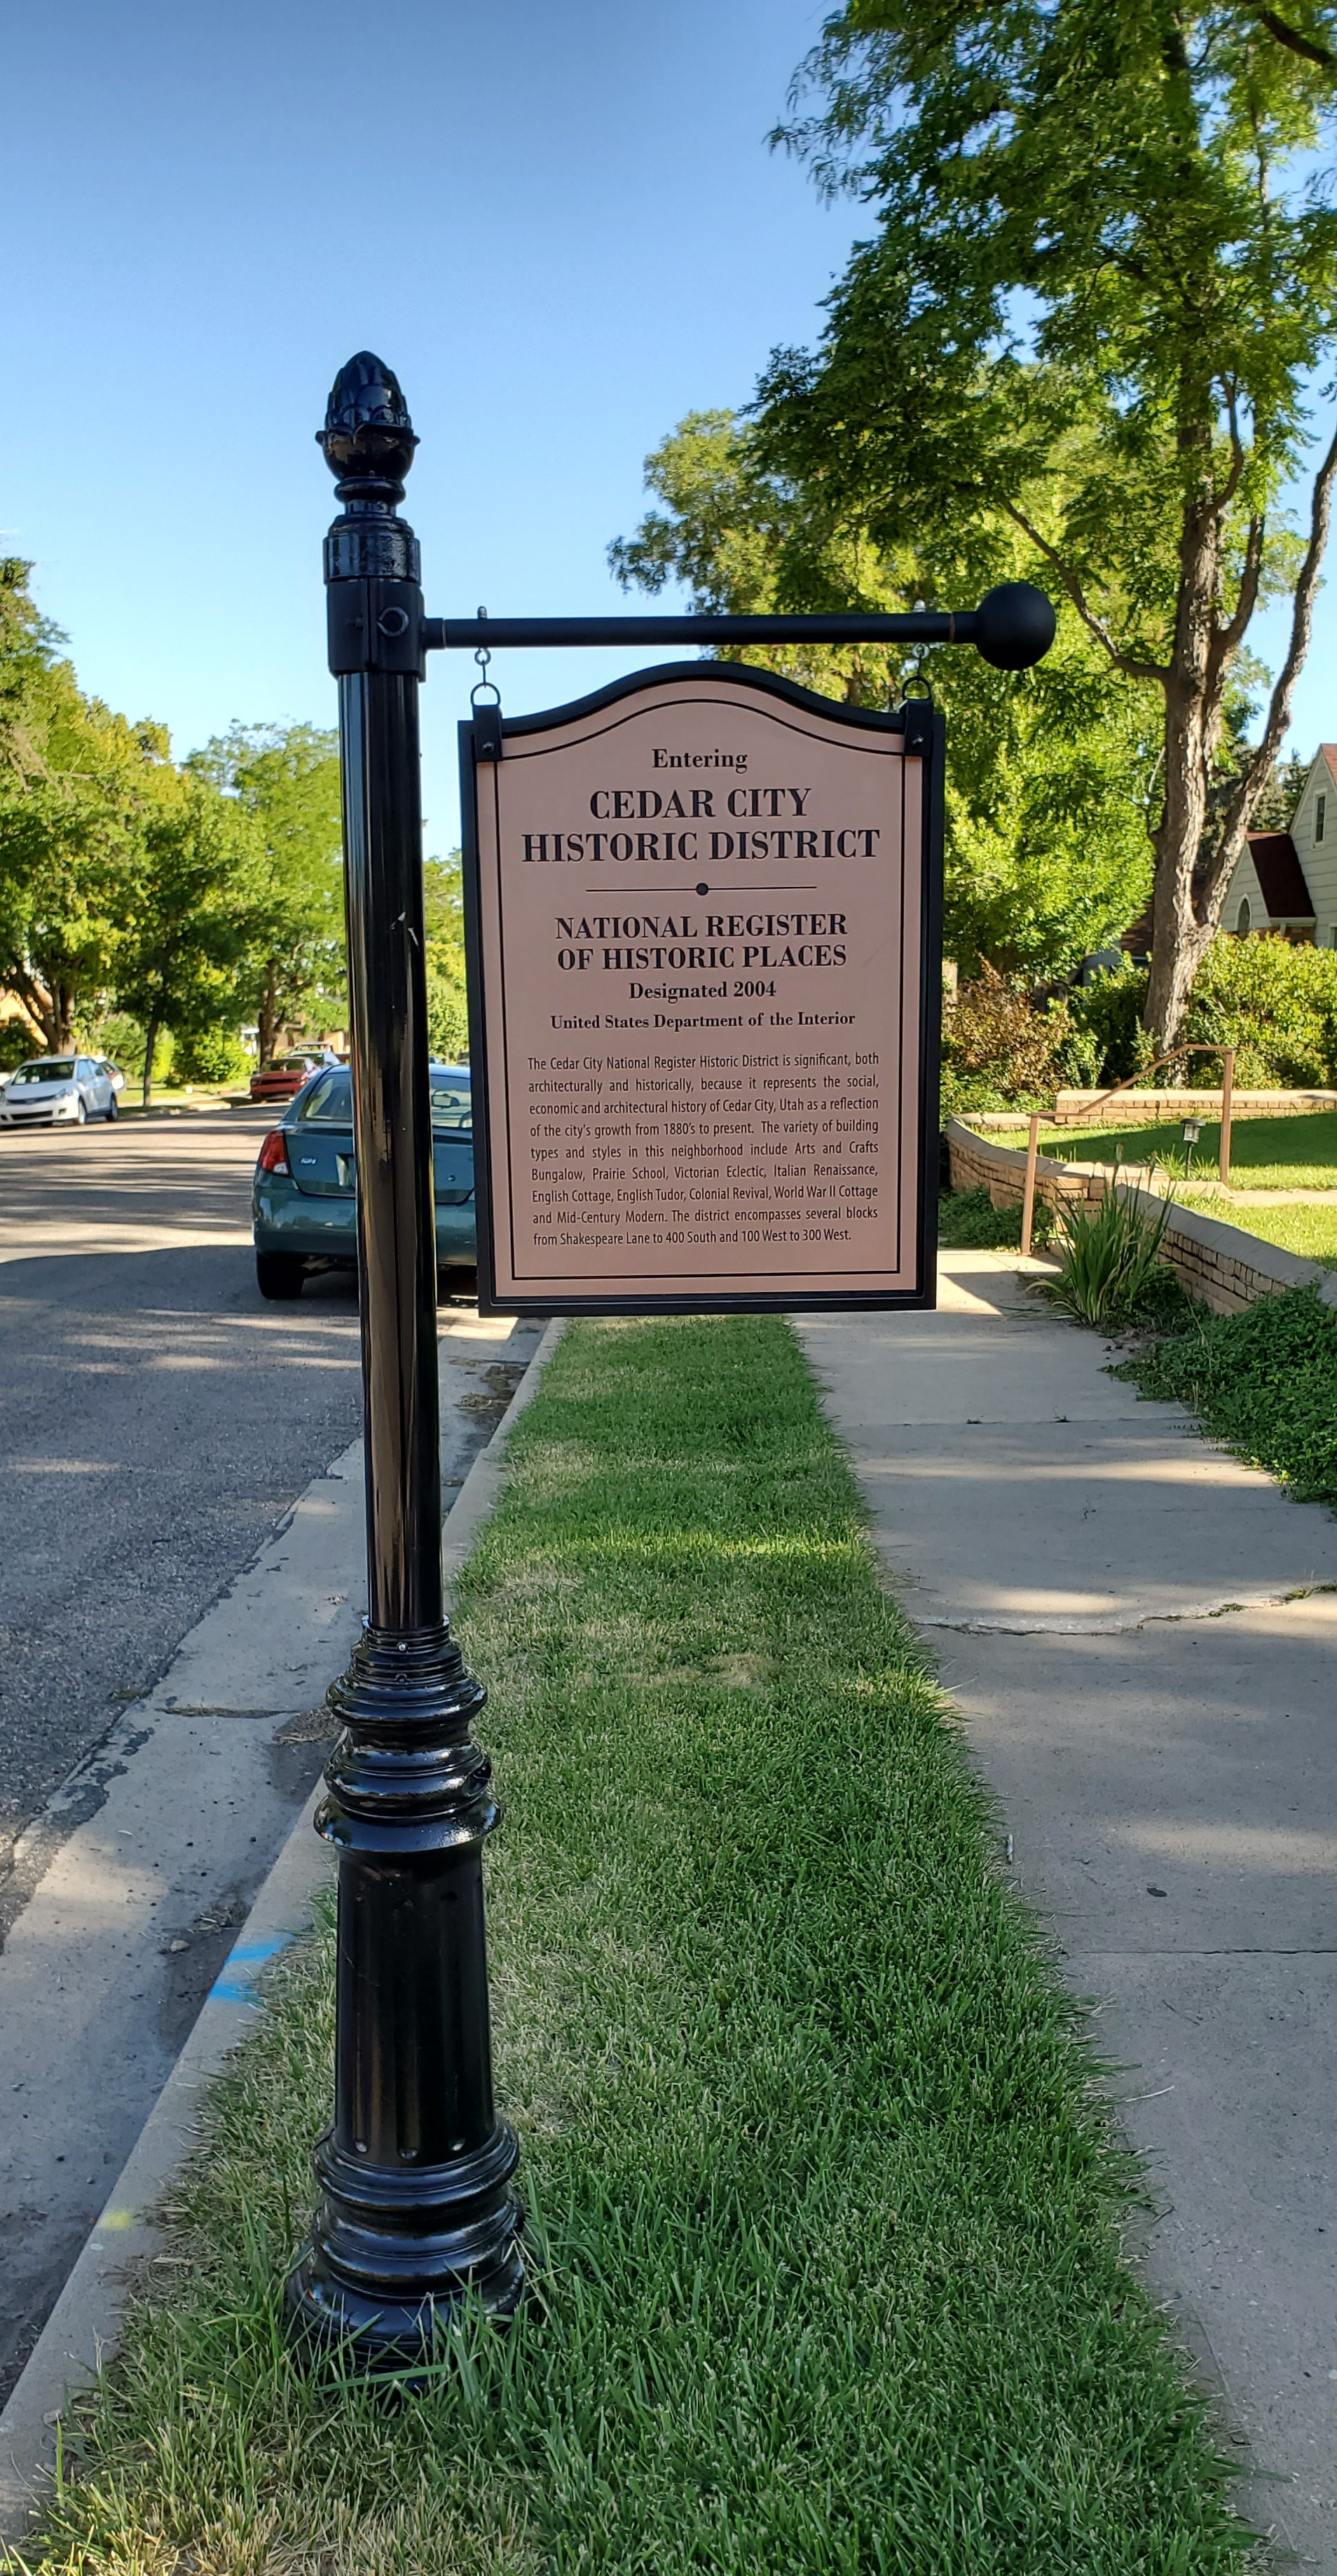 Sign introducing historic district